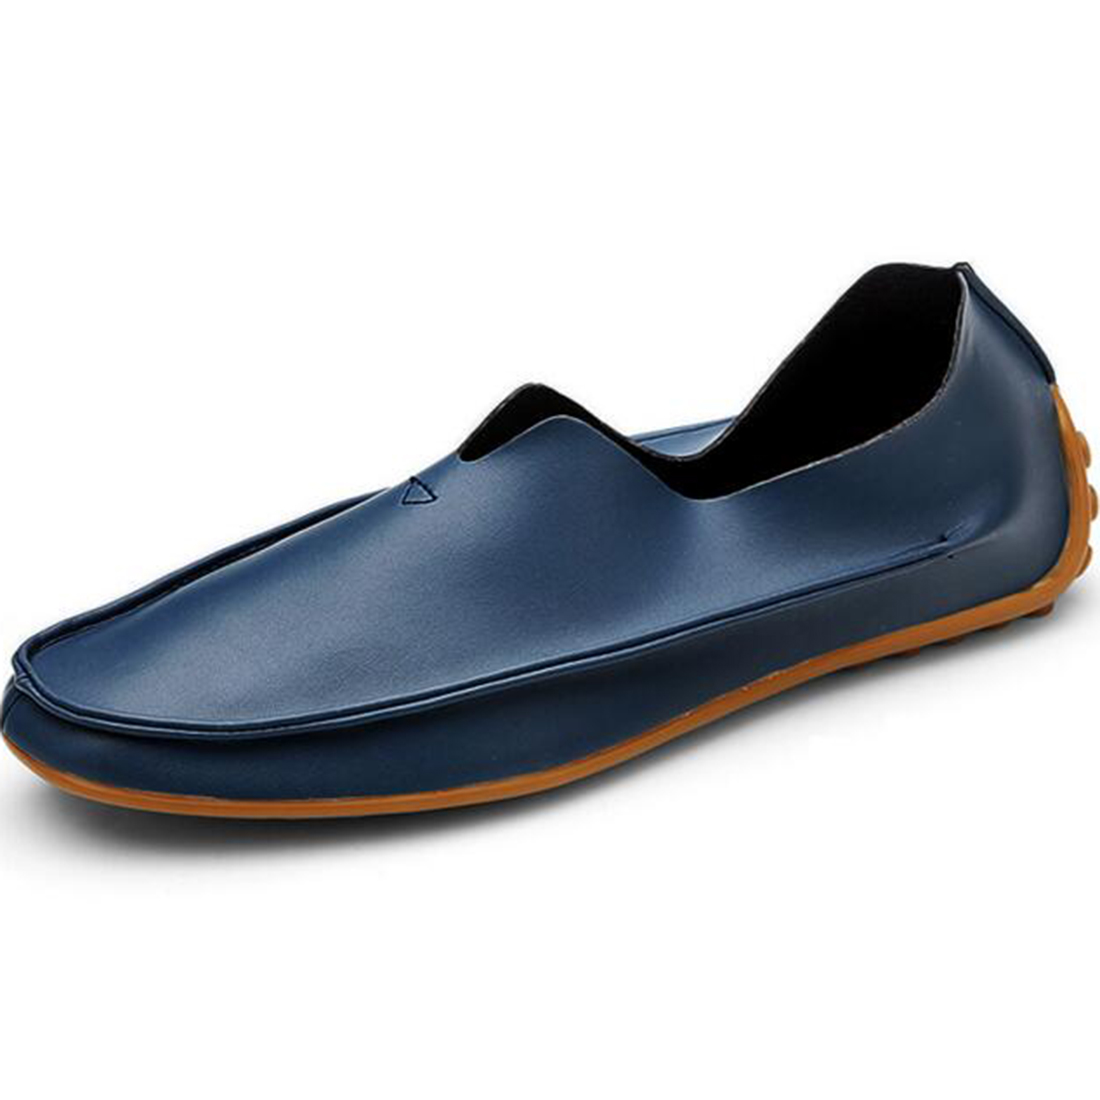 Fashion  Driving Flat Shoes men PU Leather loafers Mens Slip on  Moccasins Walking Loafers Boat shoes Comfort Shoes Sizes 11 2017 autumn fashion men pu shoes slip on black shoes casual loafers mens moccasins soft shoes male walking flats pu footwear